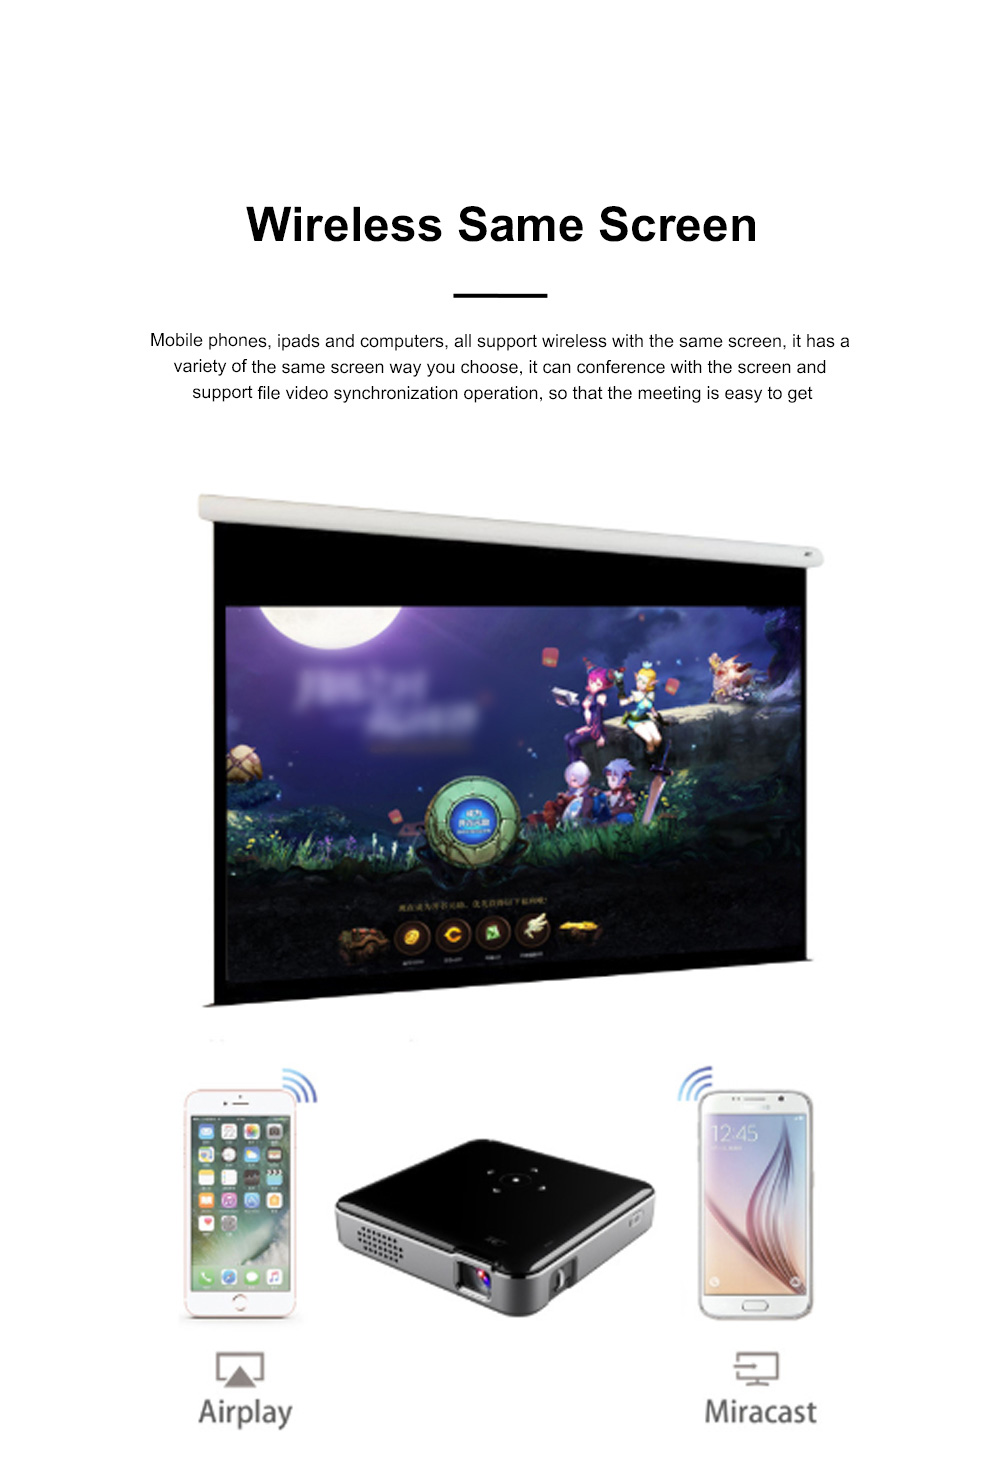 S80 Android Smart Projector HD 1080P 854x480 Wireless Miracast Airplay Wifi Display Smartphone Mini Pocket Projector 3